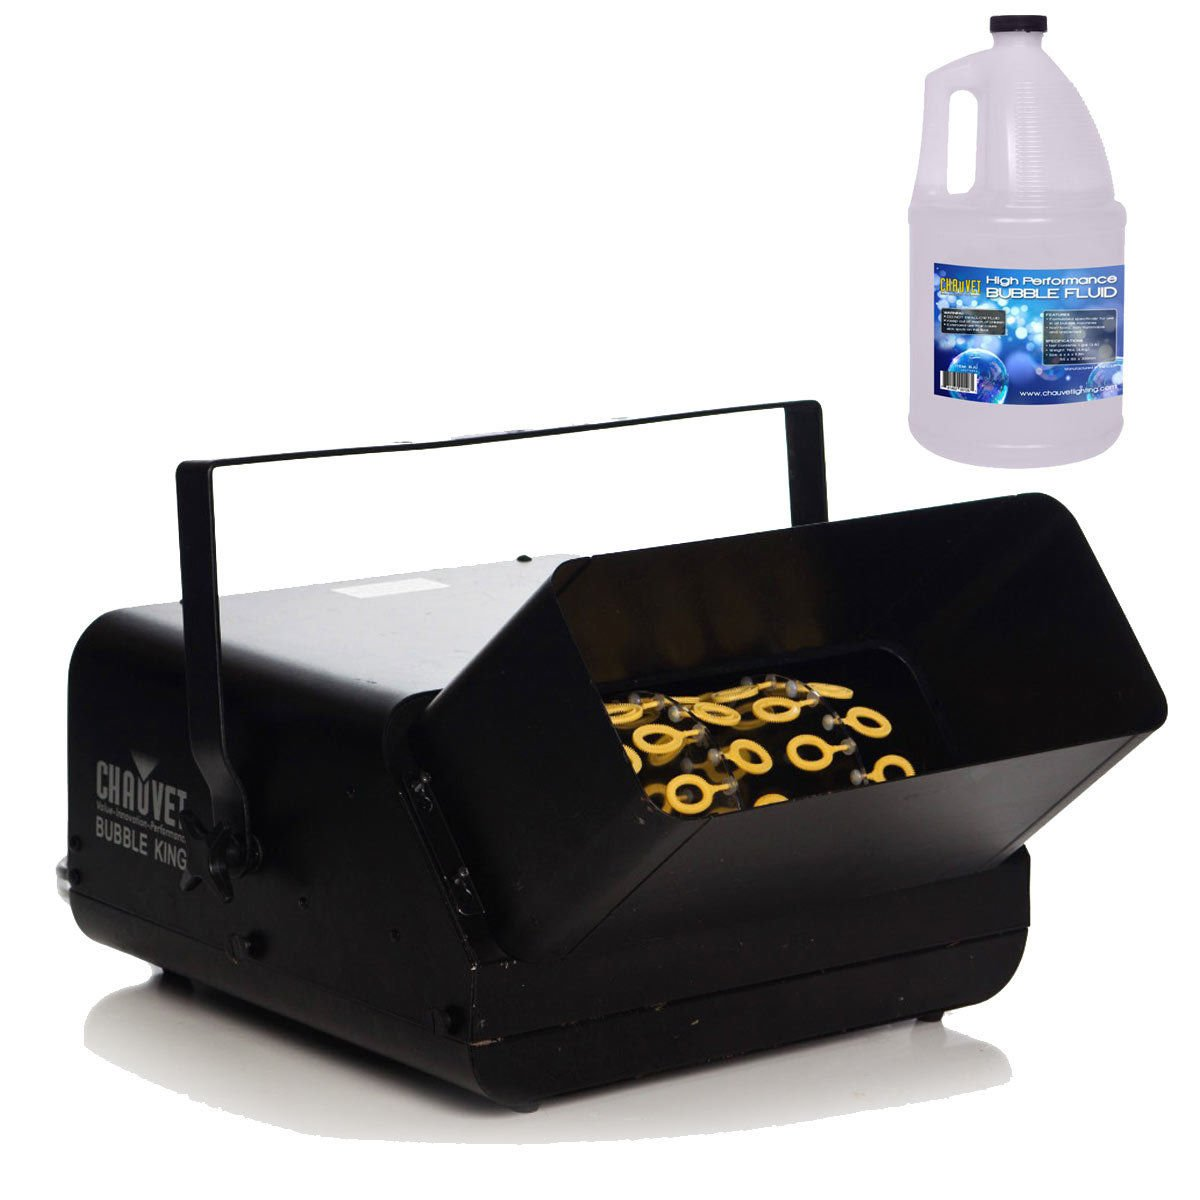 Chauvet B550 Bubble King Bubble Machine w/ Bubble Fluid by Chauvet